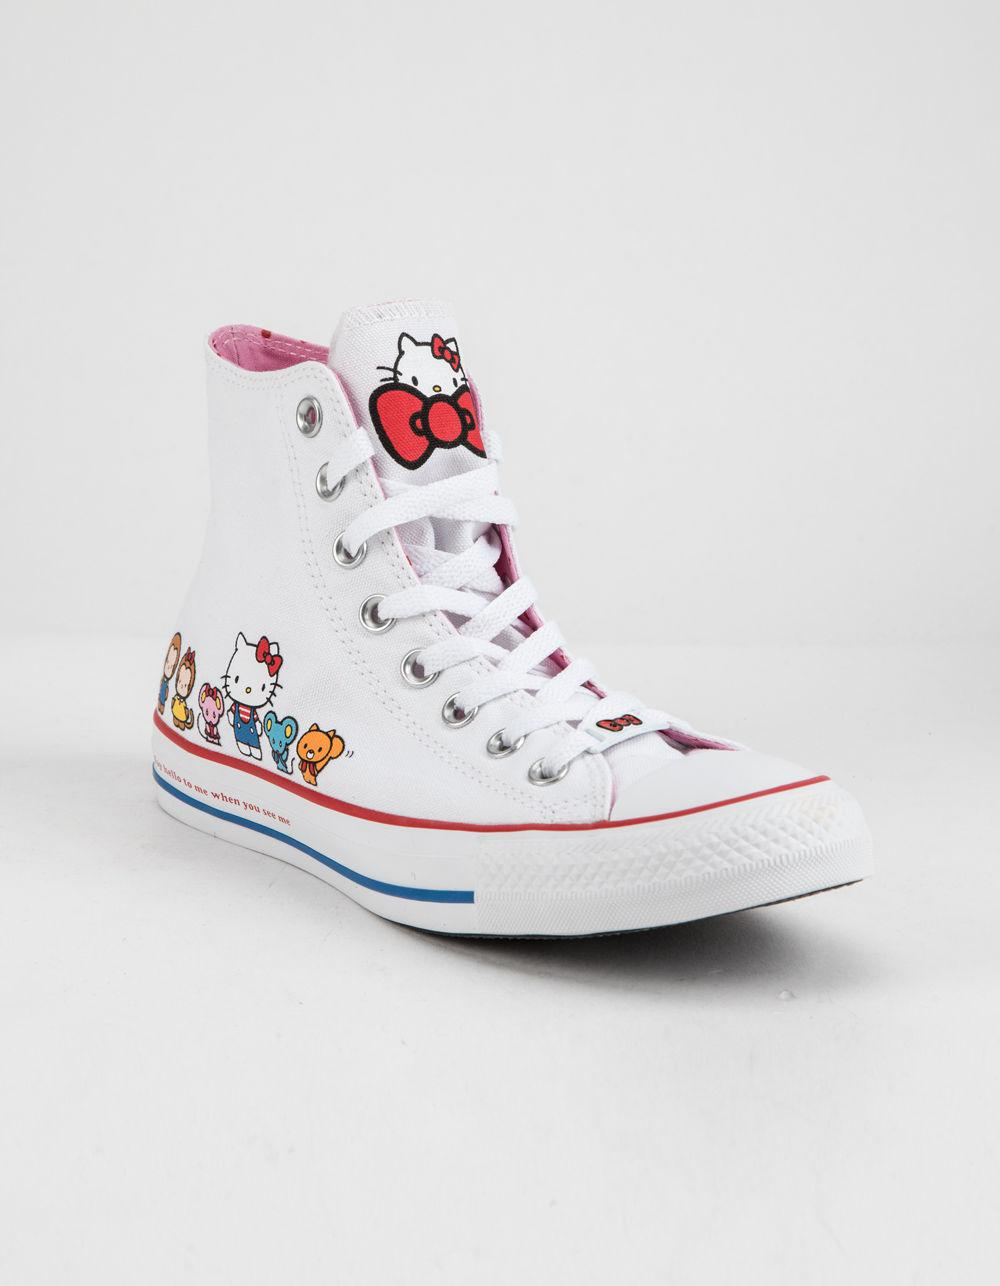 9c852b809b5a49 Lyst - Converse X Hello Kitty Chuck Taylor All Star White   Prism Pink High  Top Womens Shoes in White - Save 39%